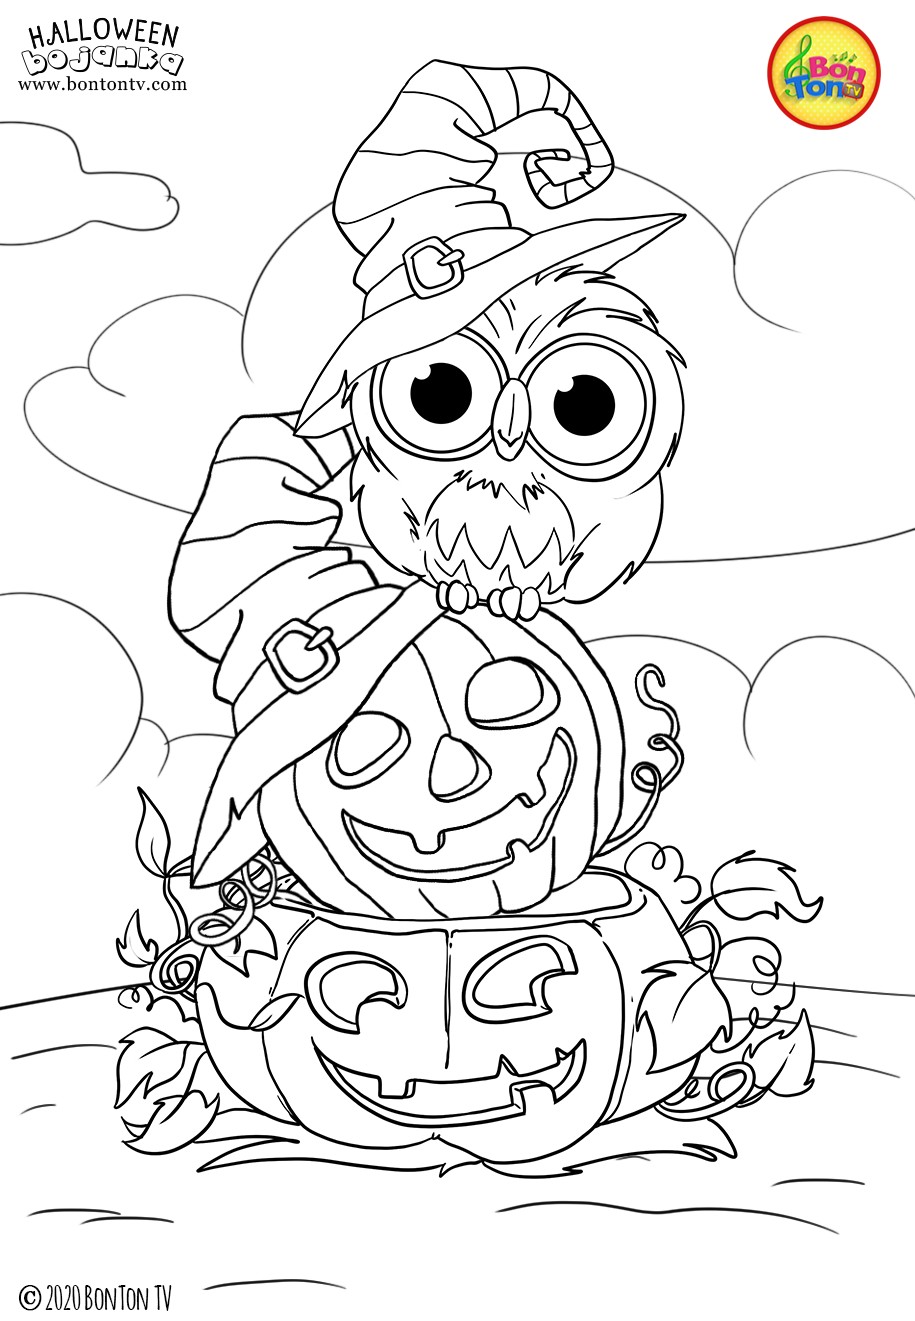 Halloween Coloring Pages For Kids Free Preschool Printables Noc Vjestica Bojanke Cute H Scary Halloween Crafts Halloween Coloring Book Halloween Coloring